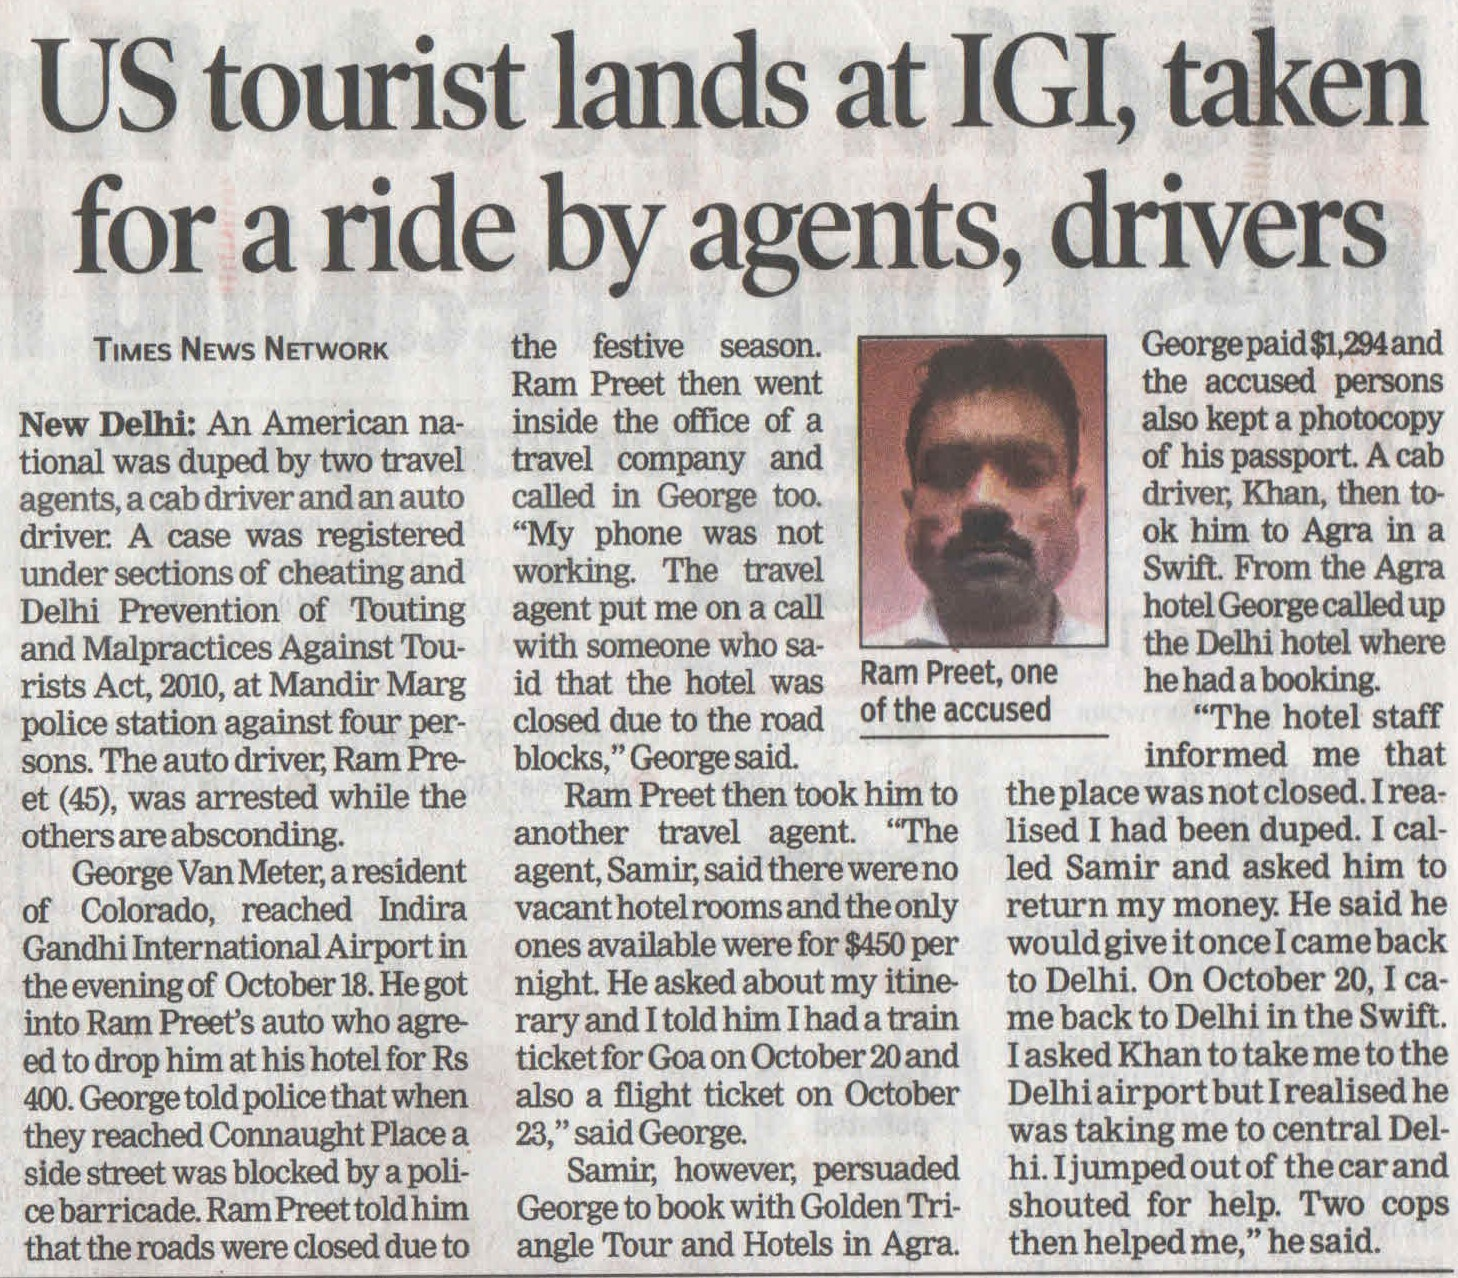 US Tourist lands at IGI, taken for a ride by agents, drivers